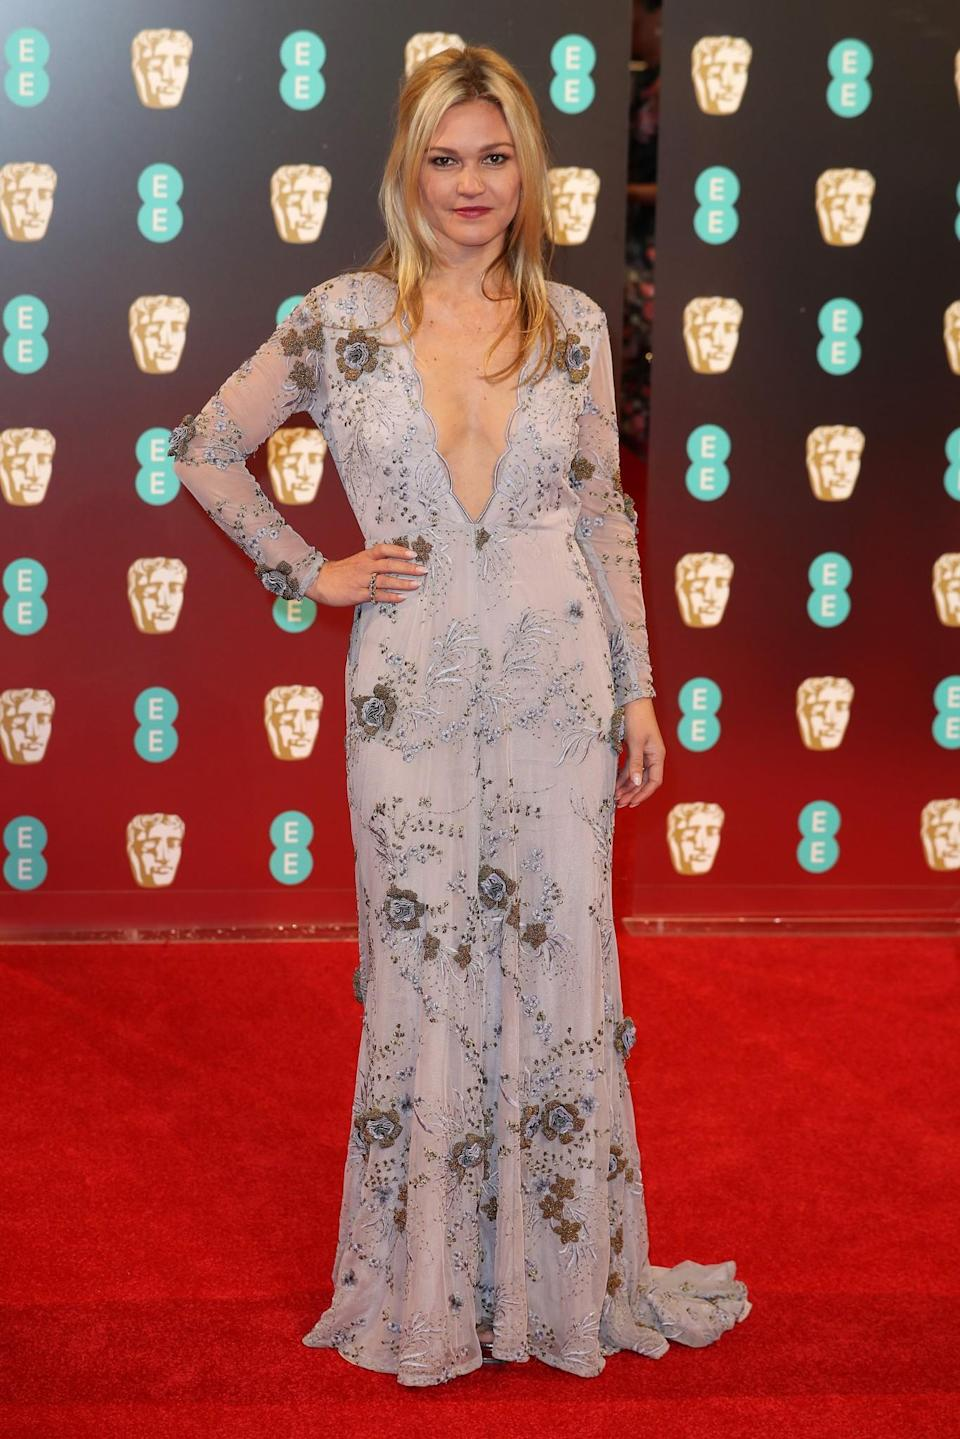 <p>Julia went for the plunging neckline look in a light-hued dress. <i>[Photo: Getty]</i> </p>